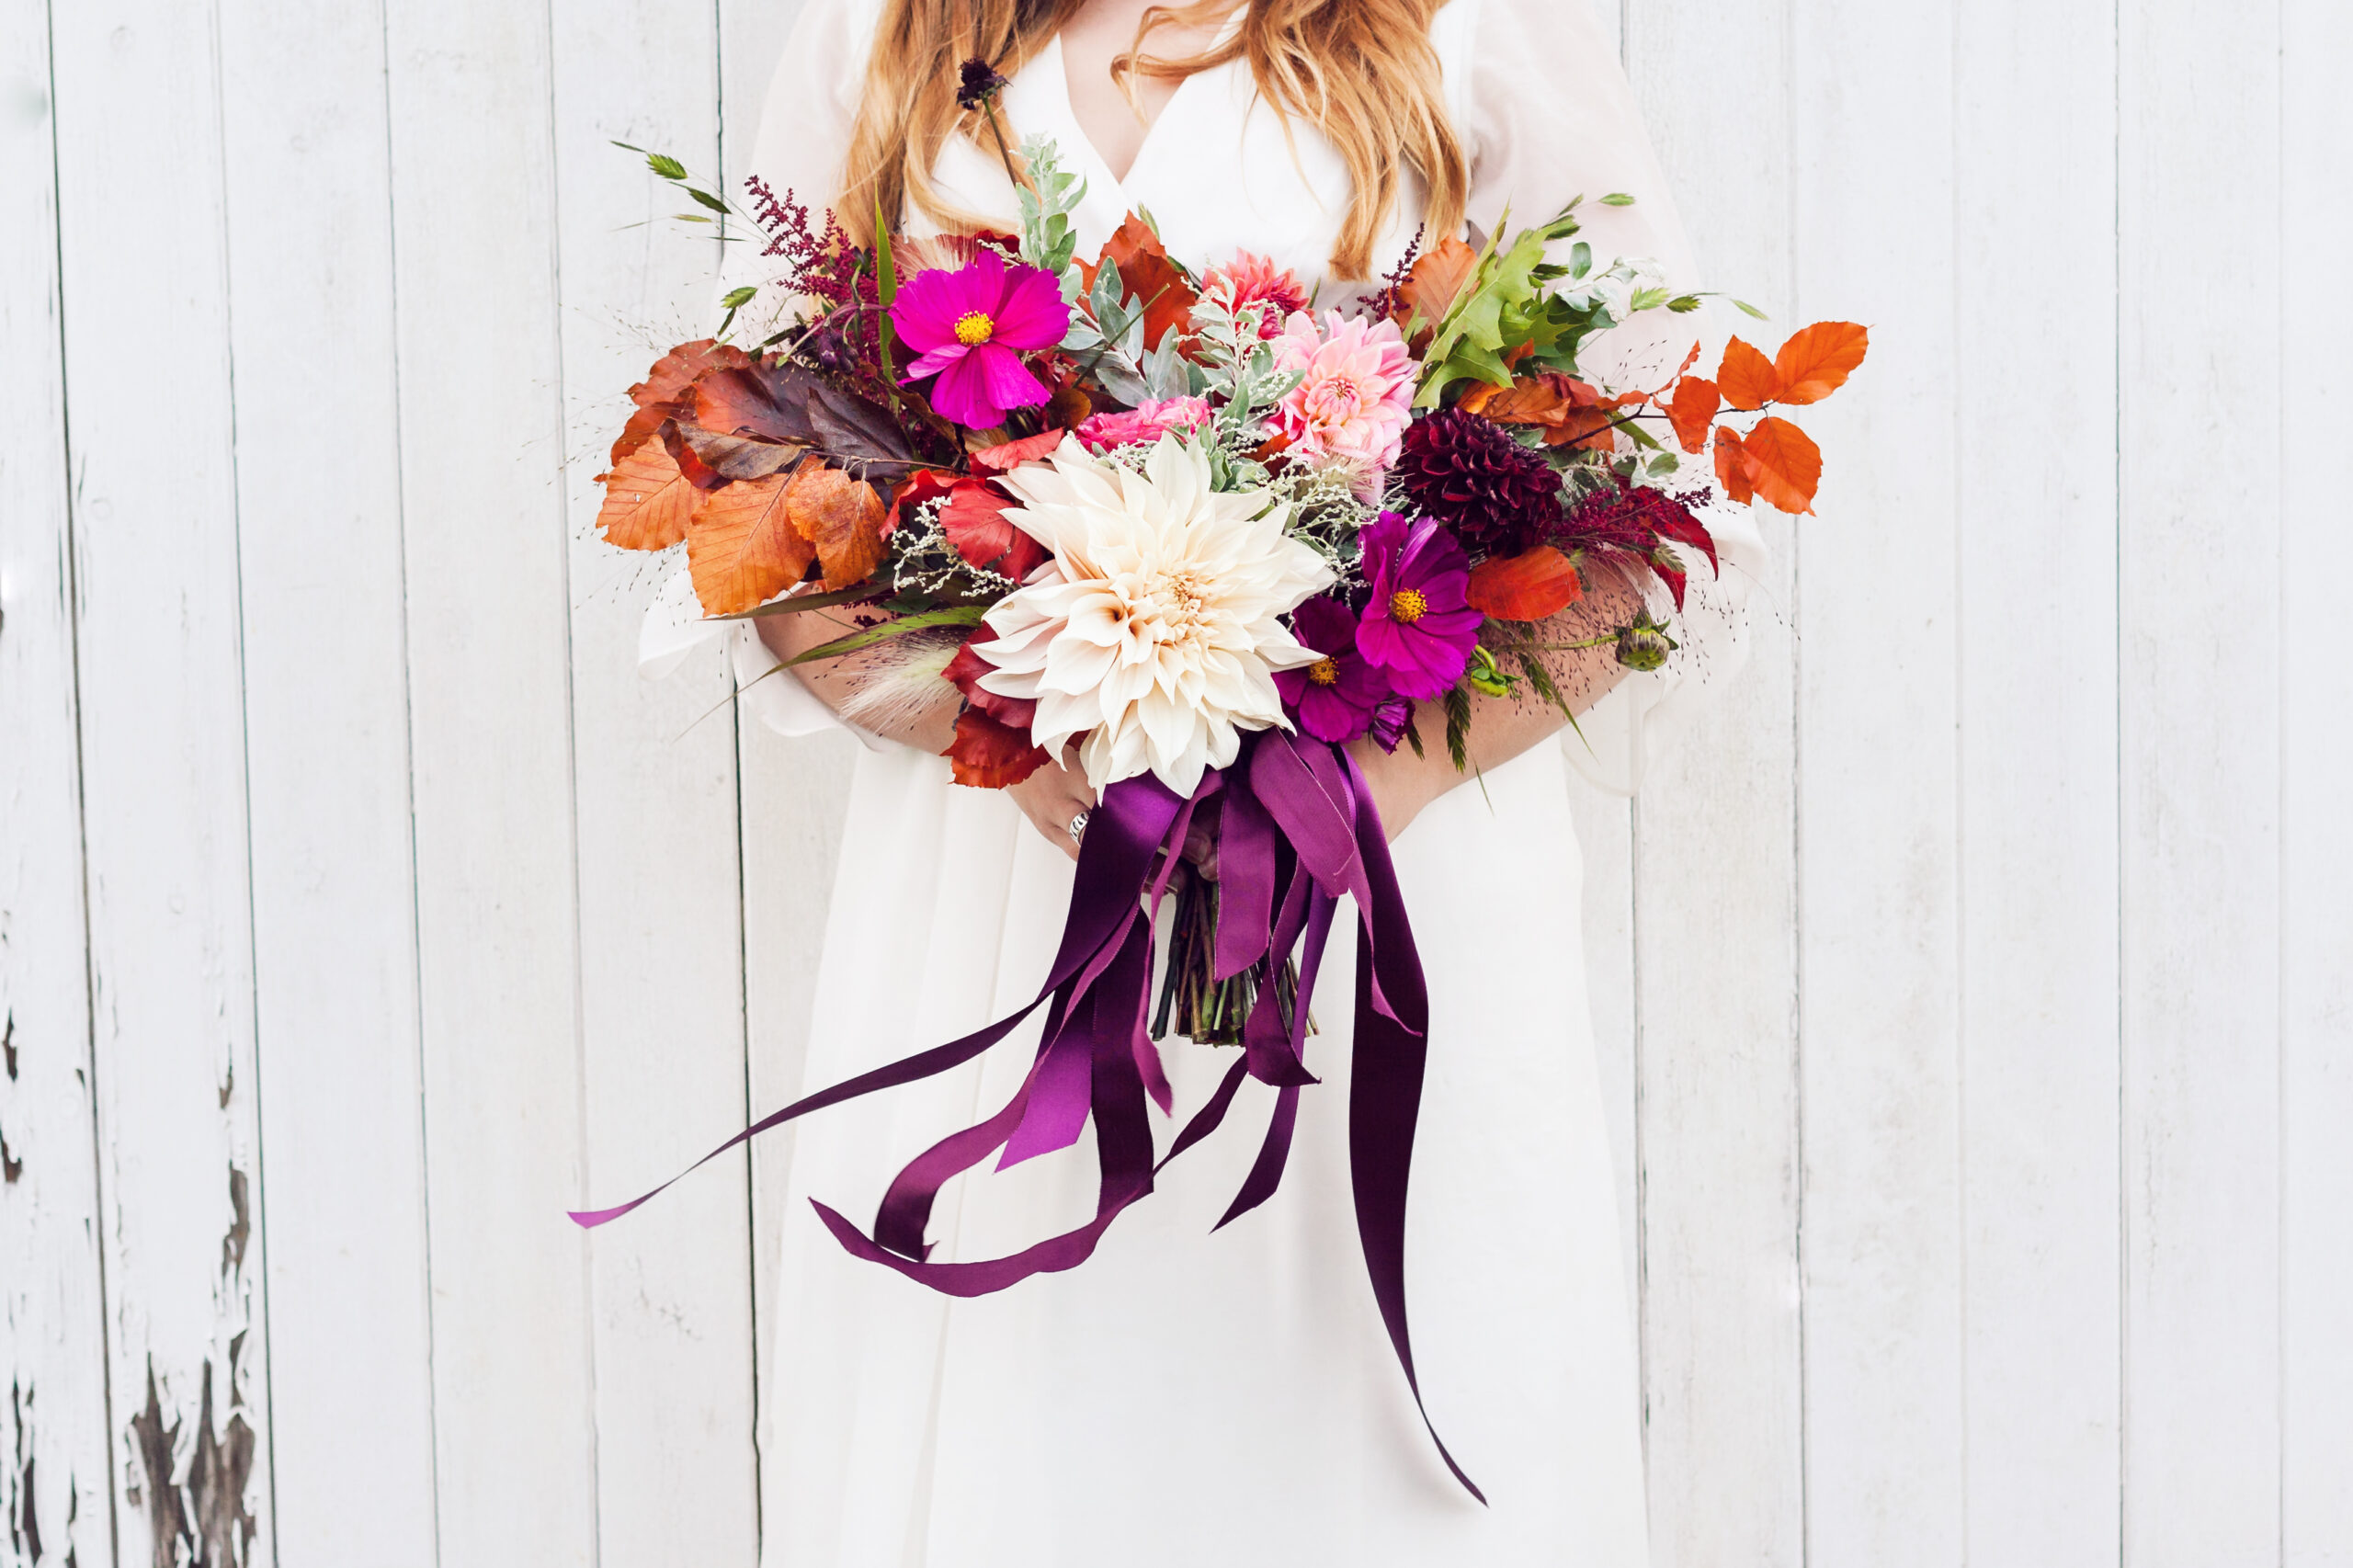 Gathered Style - Bloom Room Studio LTD - Wild Bridal Bouquet - Photo Credit Katie Spicer